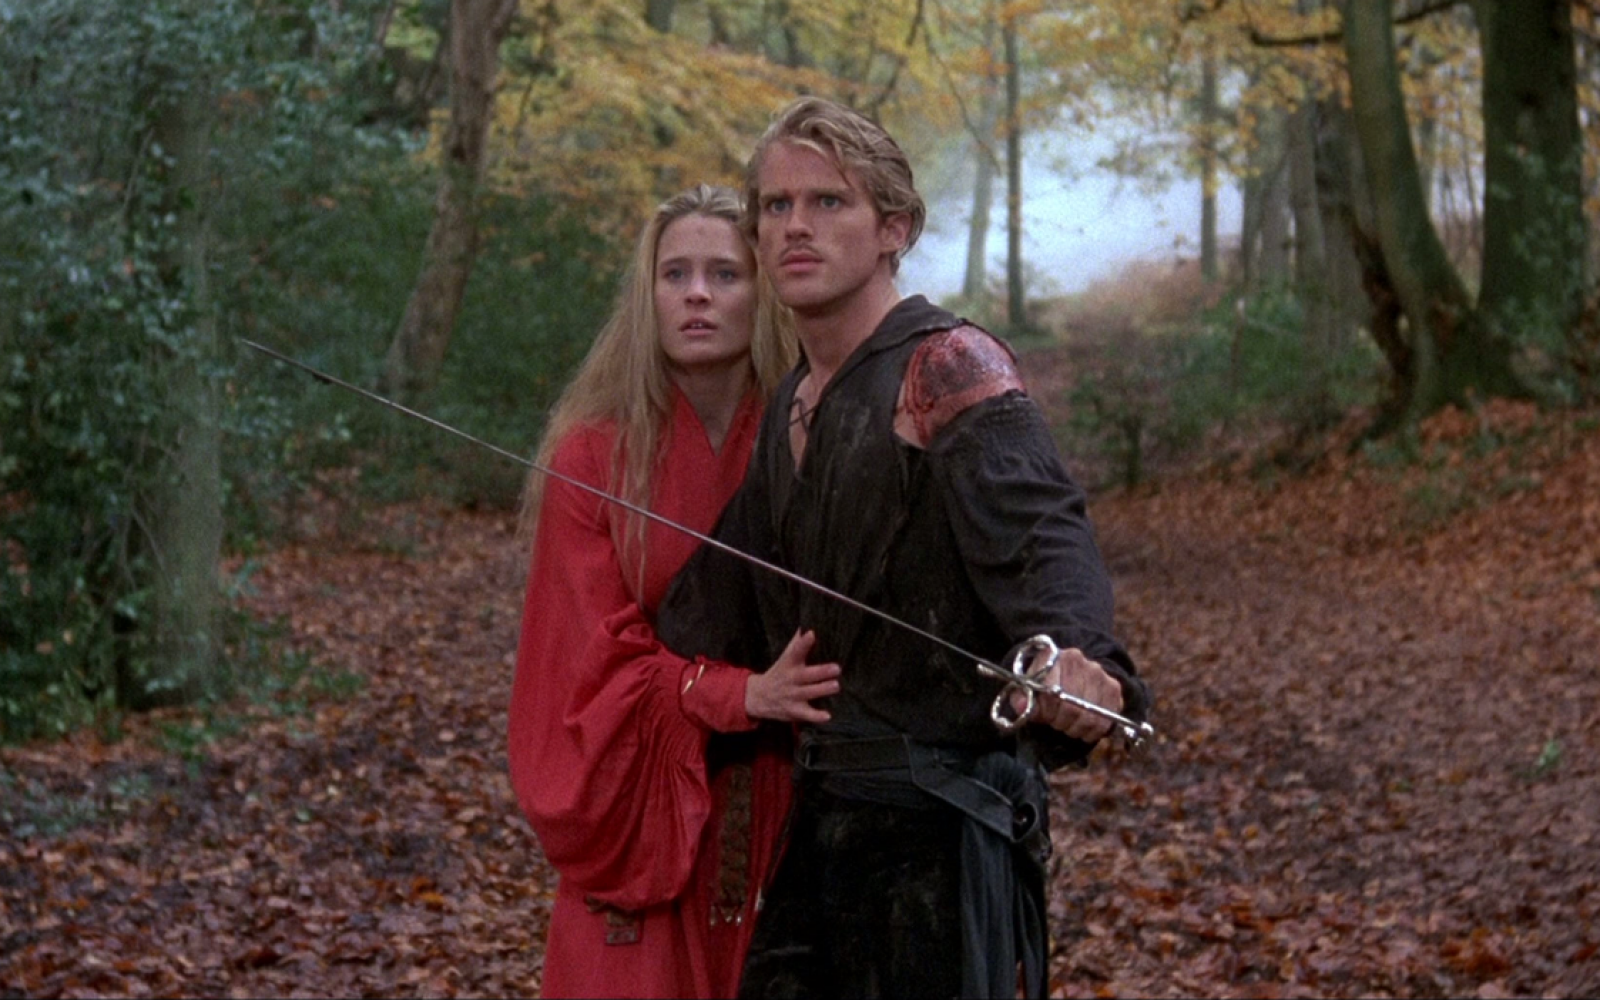 19 Quotes We All Loved From 'The Princess Bride'